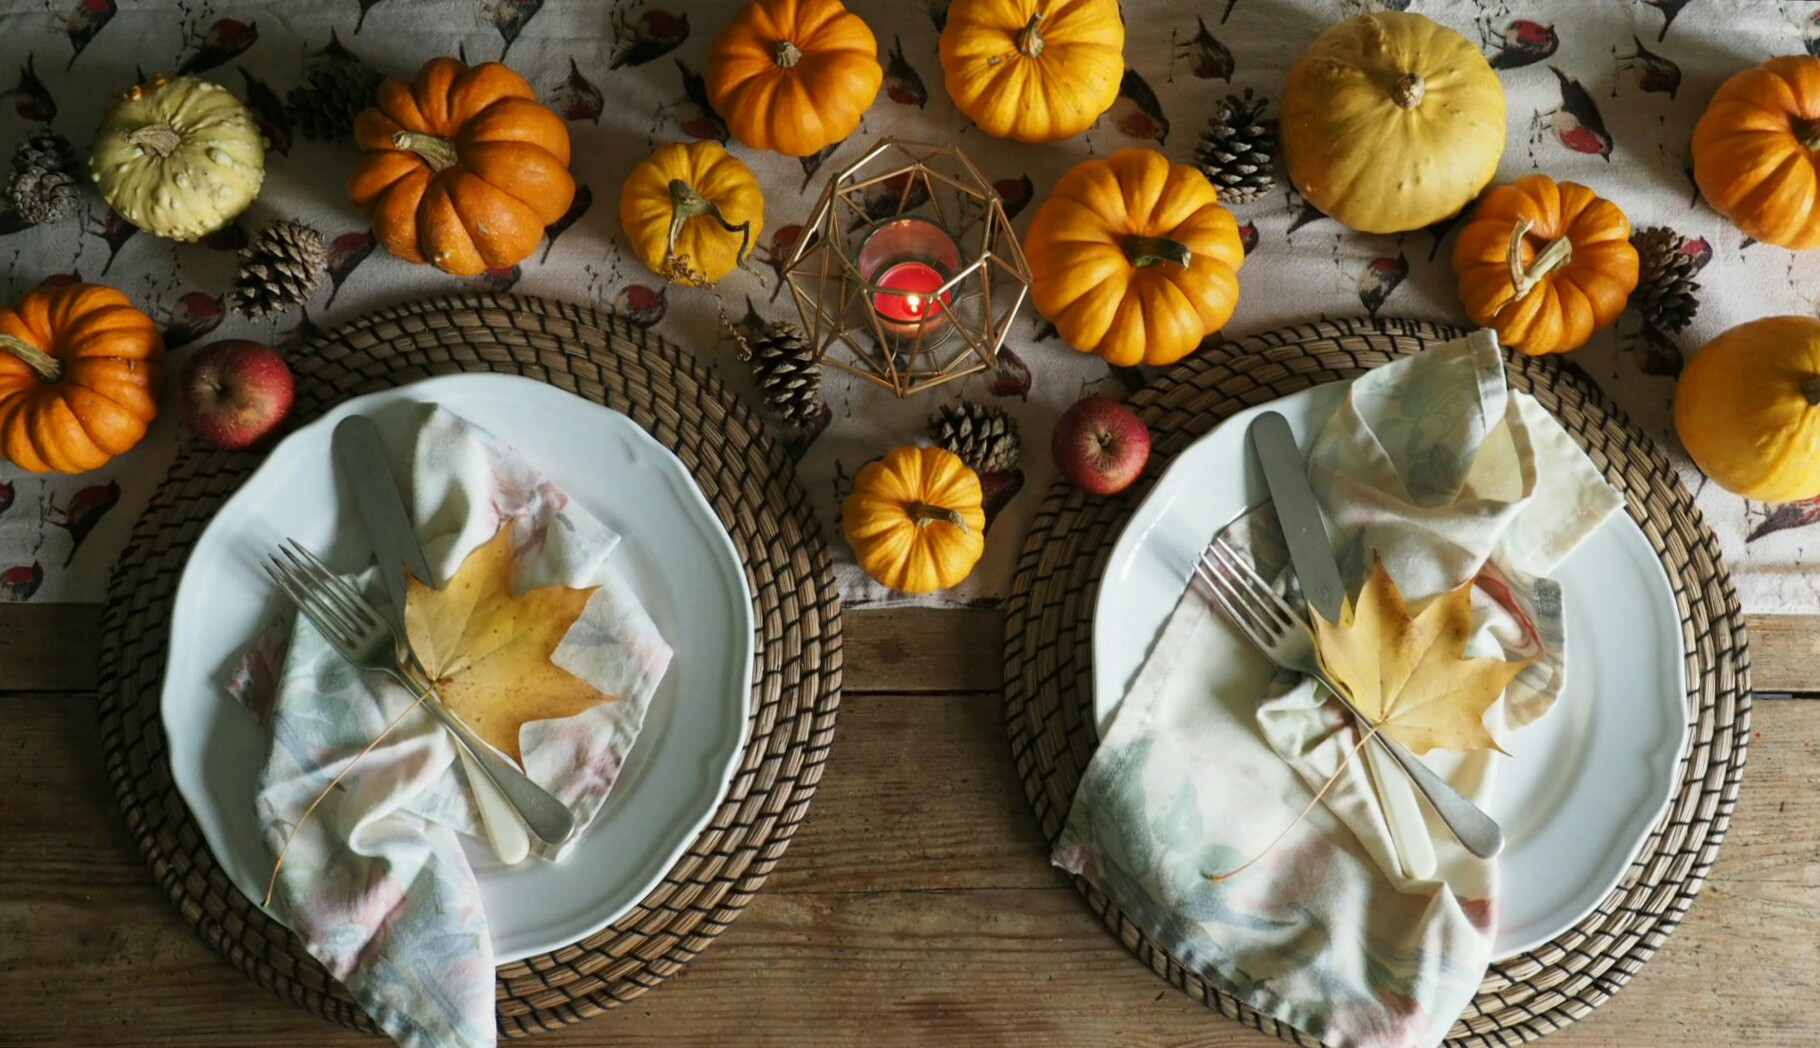 ~ The Harvest Table ~